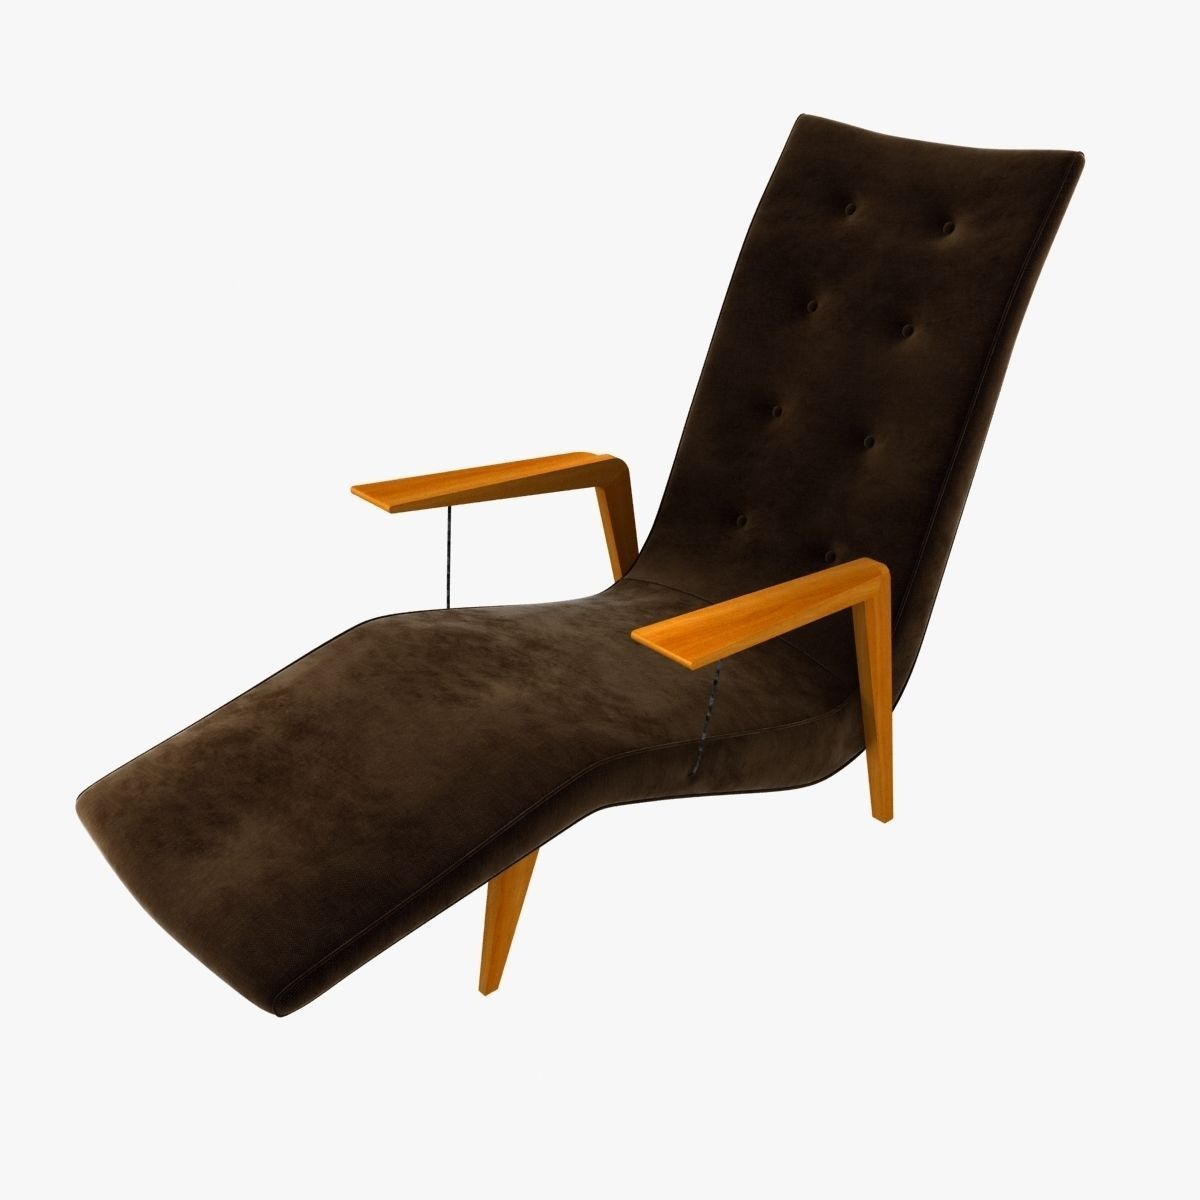 Chaise lounge by joaquin tenreiro 3d model max obj 3ds fbx for Chaise snack